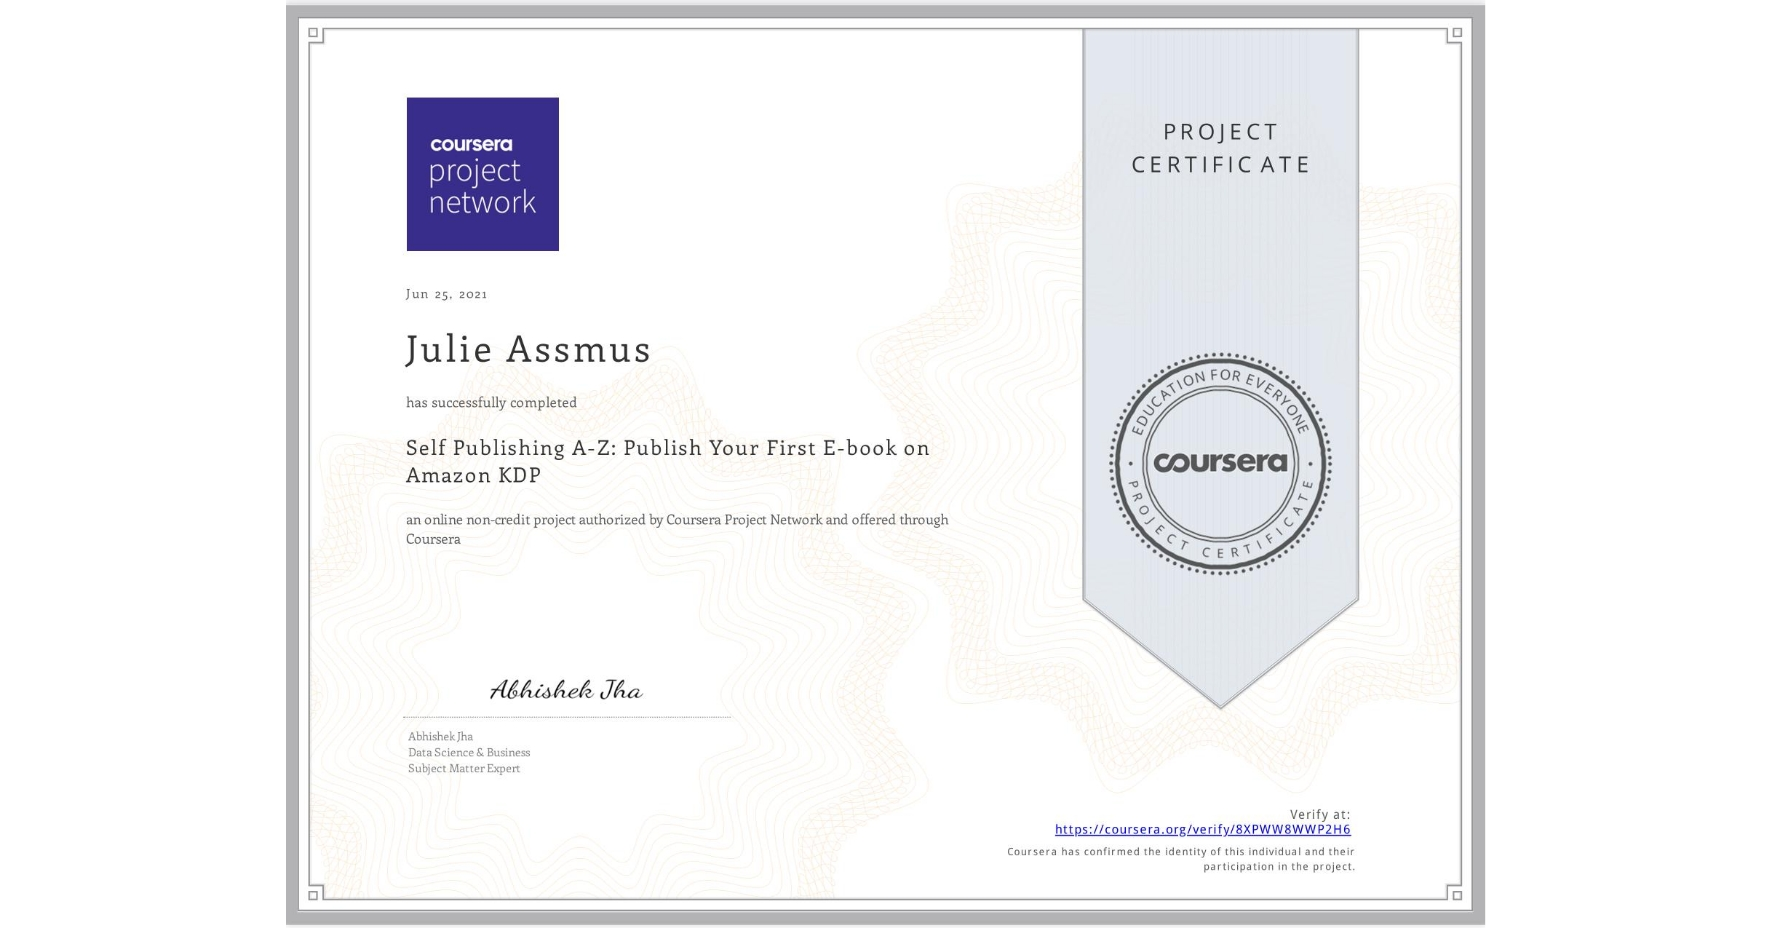 View certificate for Julie Assmus, Self Publishing A-Z: Publish Your First E-book on Amazon KDP, an online non-credit course authorized by Coursera Project Network and offered through Coursera